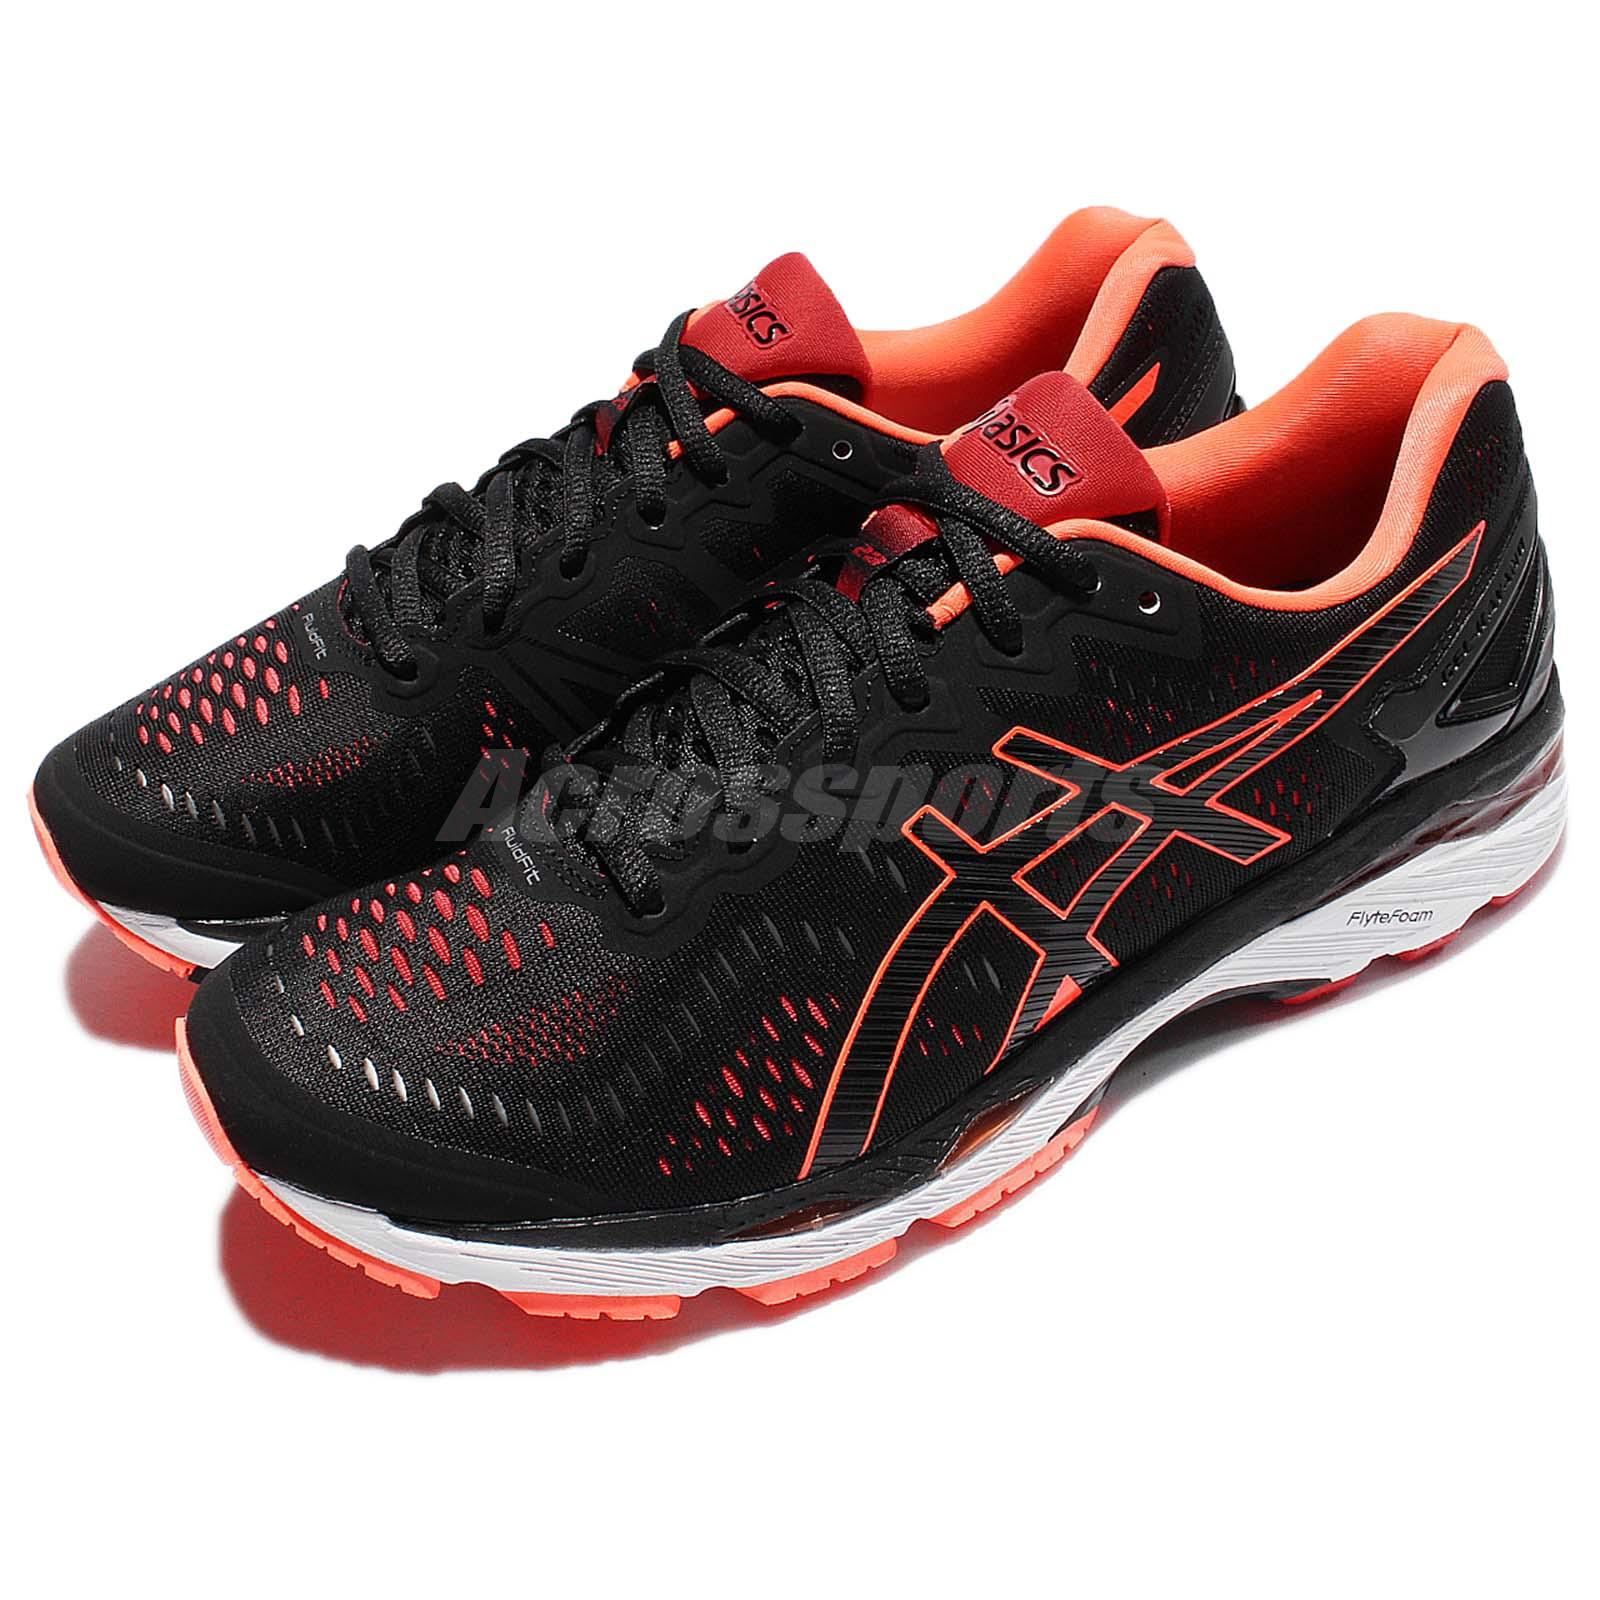 aac523a0 Details about Asics Gel-Kayano 23 Black Orange Men Running Shoes Sneakers  Trainers T646N-9030